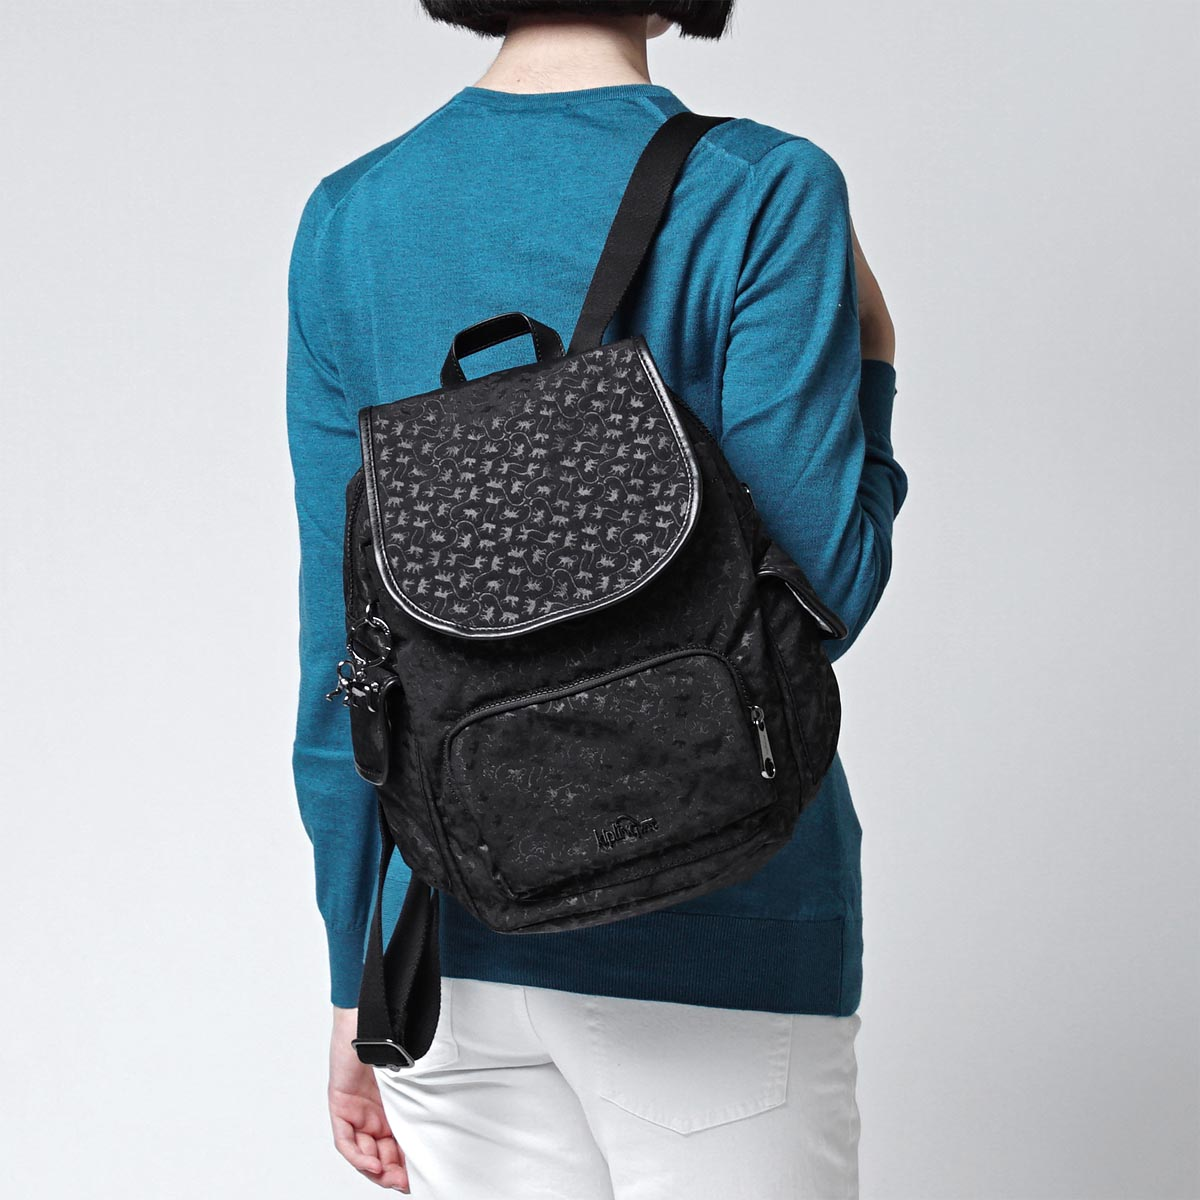 キプリング kipling backpack CITY PACK S MM BLACKMM black system k15723 98k Lady's